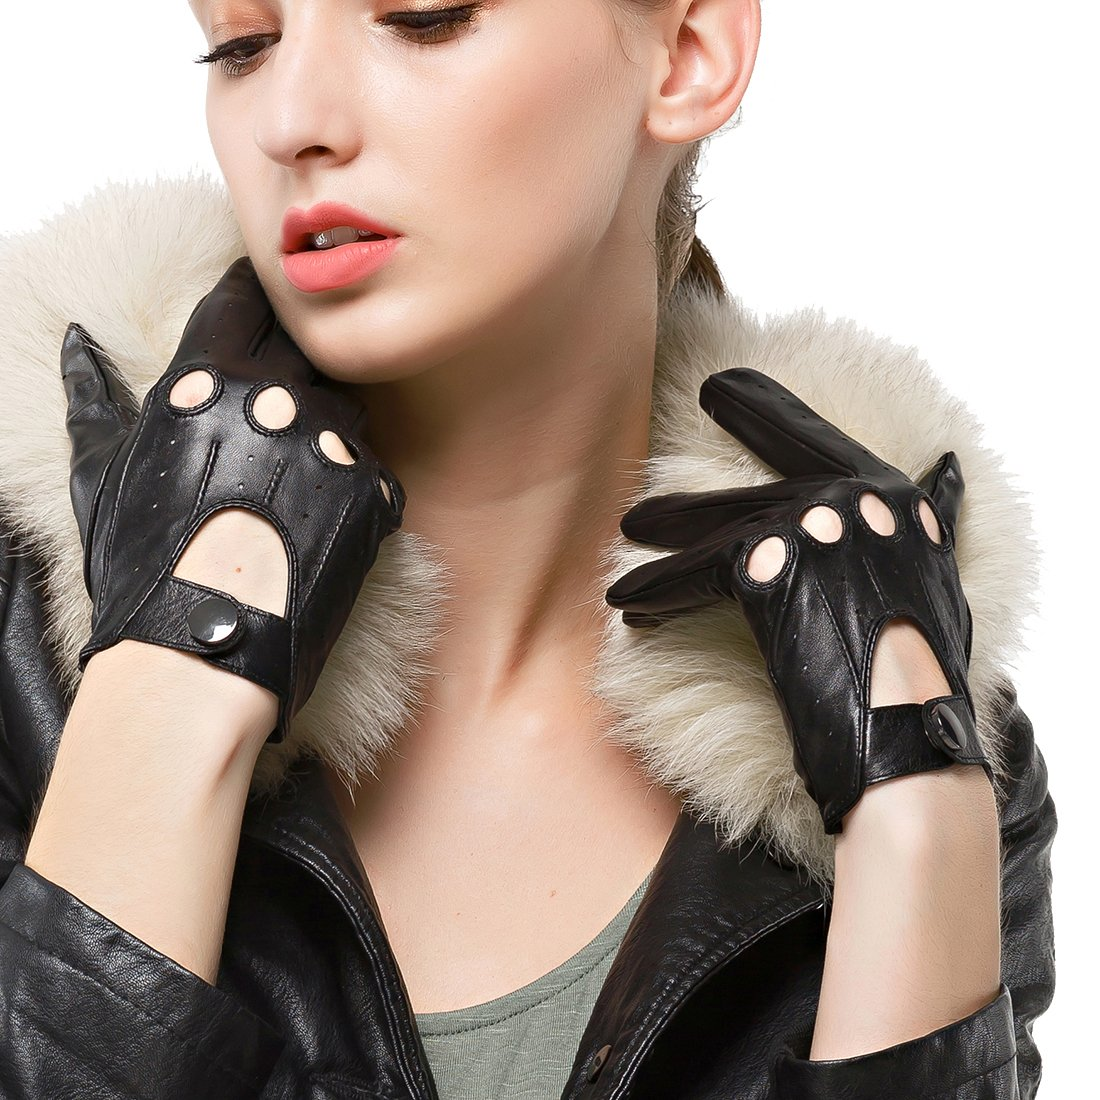 Nappaglo Women's Driving Leather Gloves Classic Lambskin Full-finger Motorcycle Open Back Unlined Gloves (Touchscreen or Non-Touchscreen) DBD068